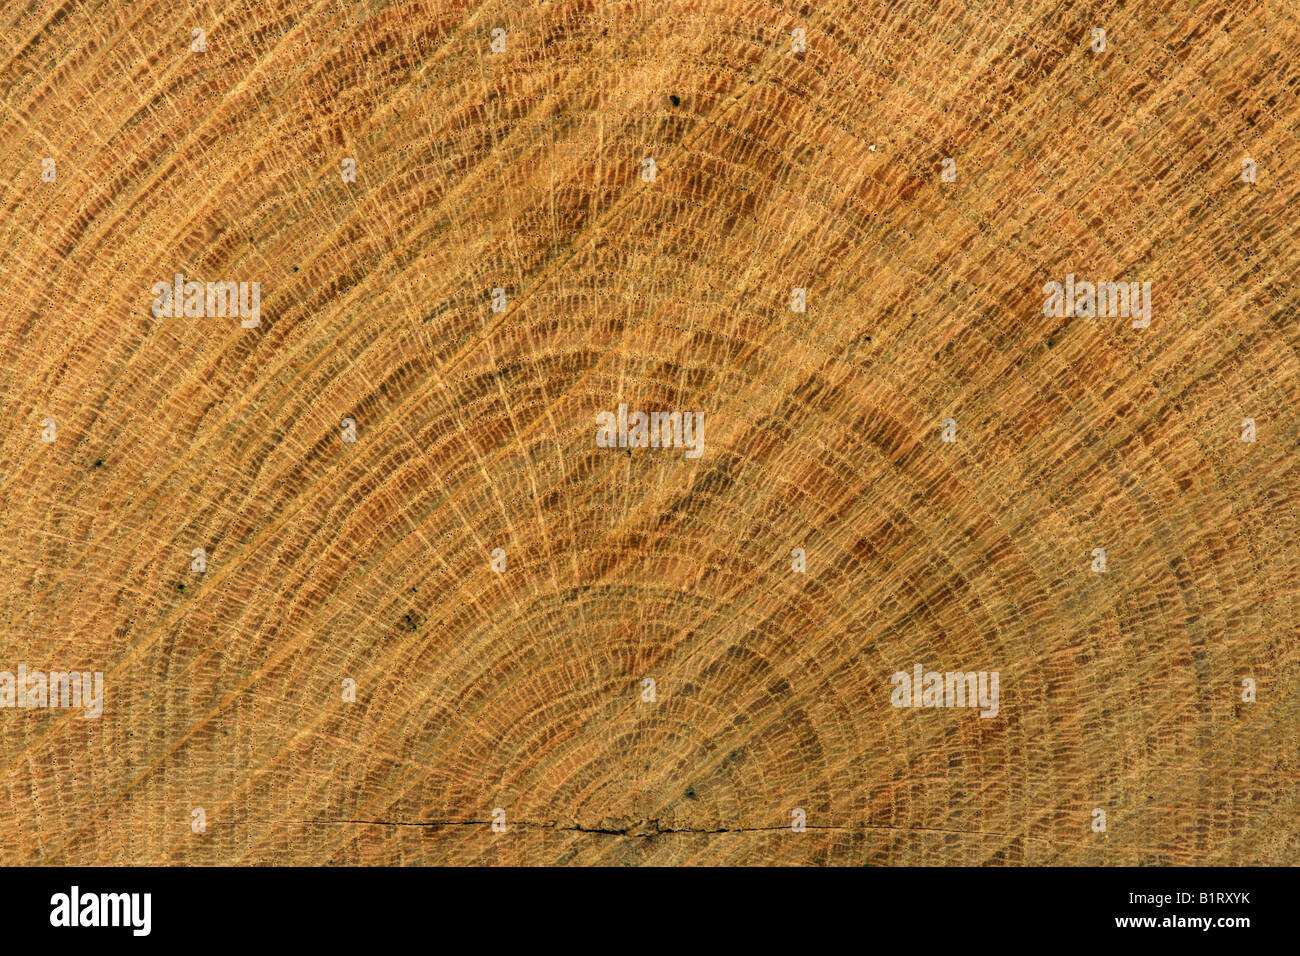 Cross section view of an Oak tree trunk (Quercus), growth rings and visible vascular bundles - Stock Image